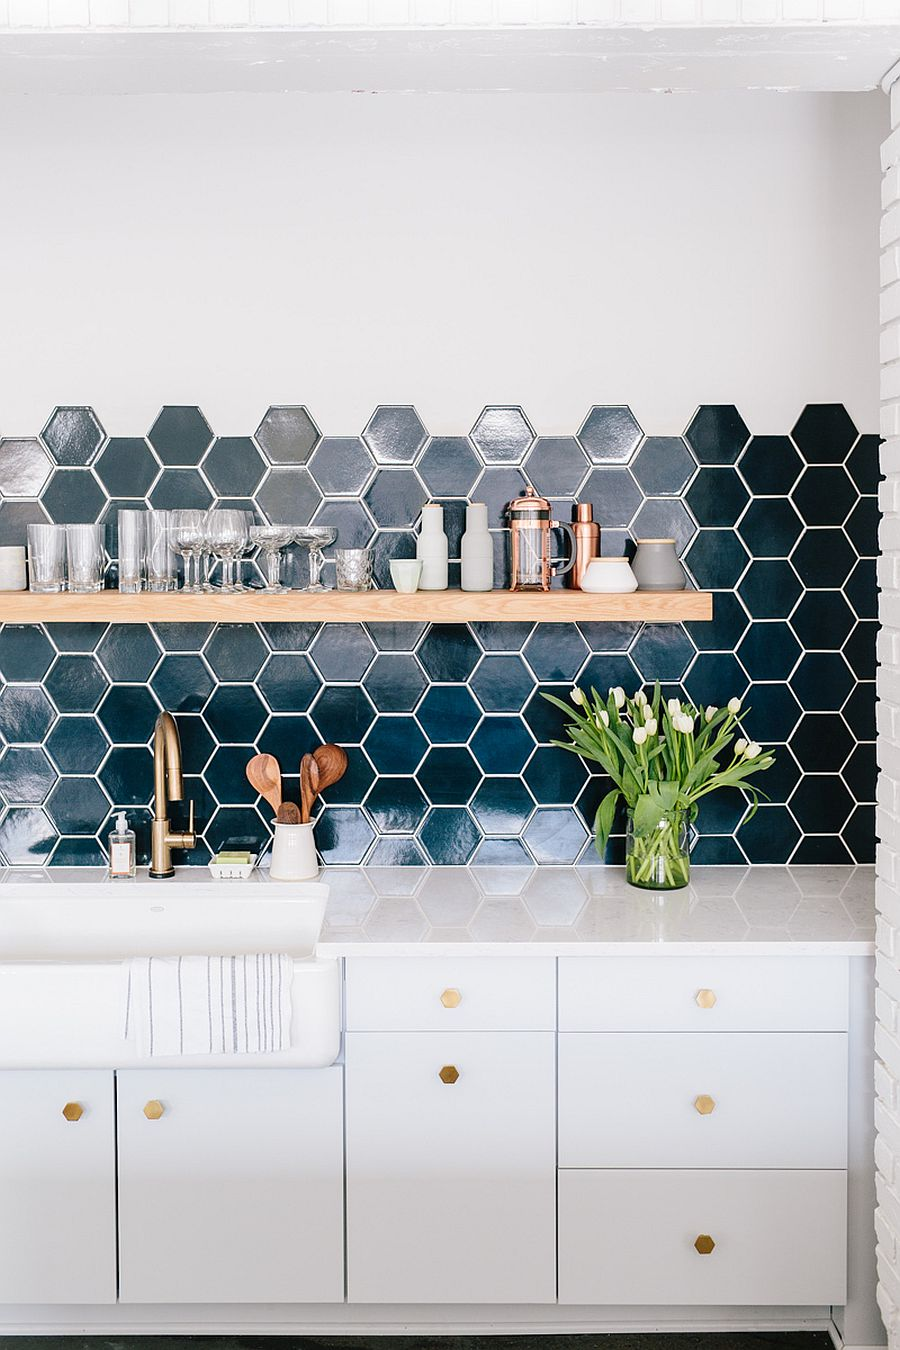 It is the hexagonal tle that is the most popular choice when it comes to adding geo pattern to the kitchen